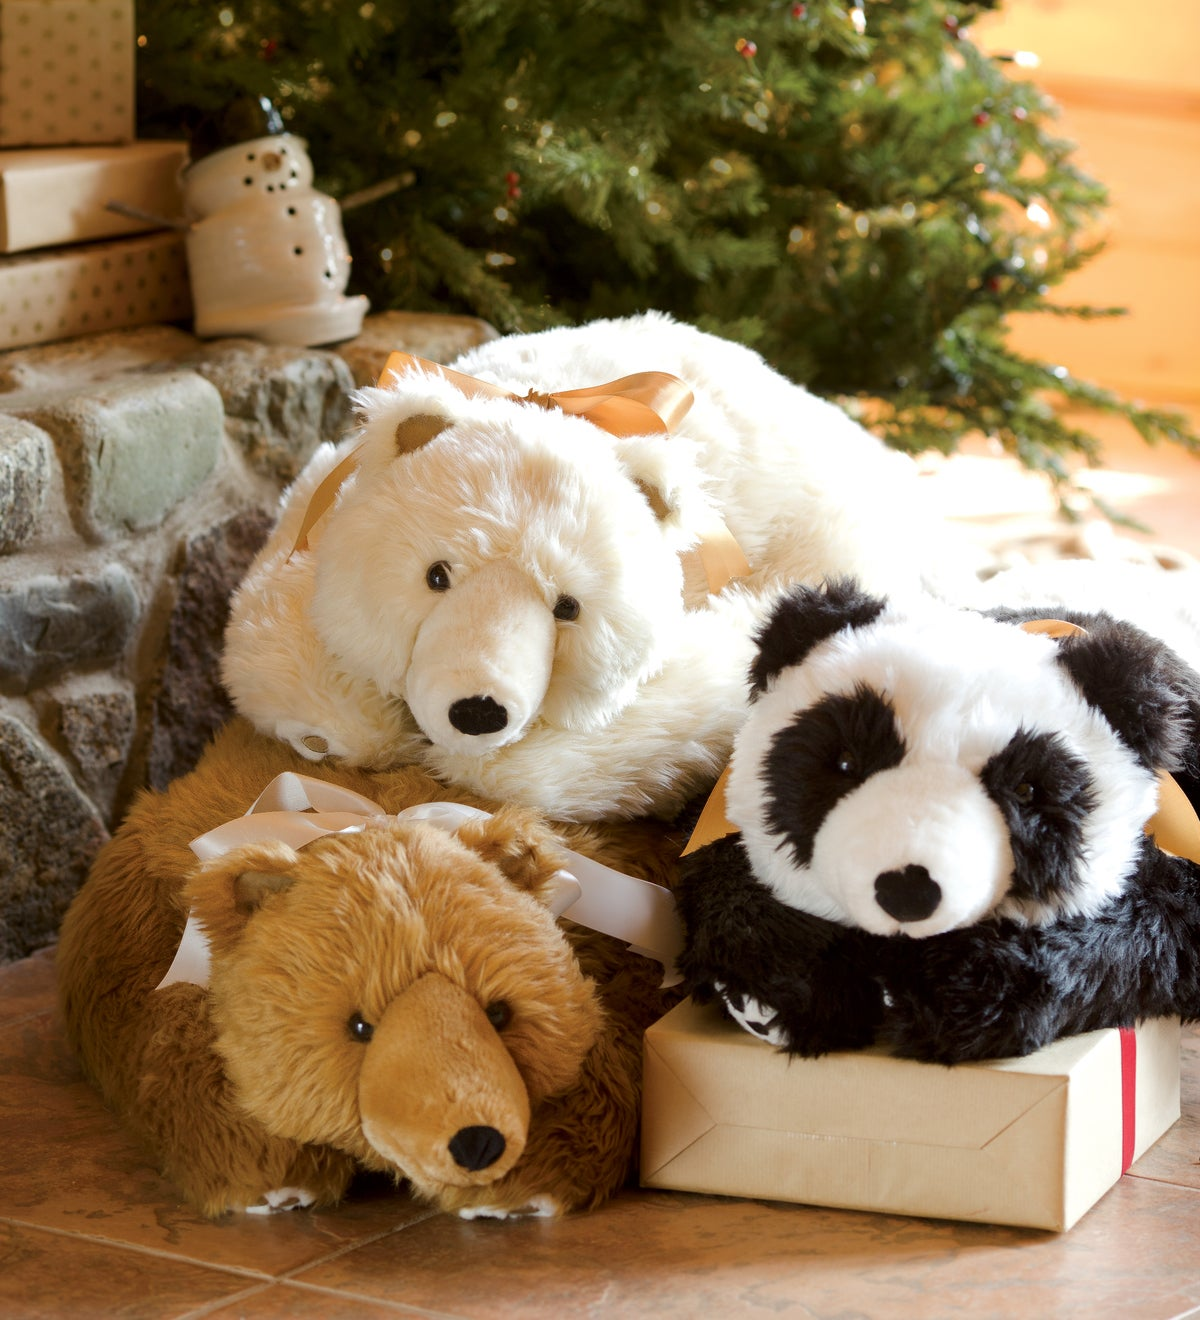 Bear Hug Body Pillows Pillows And Throws Home Accessories For